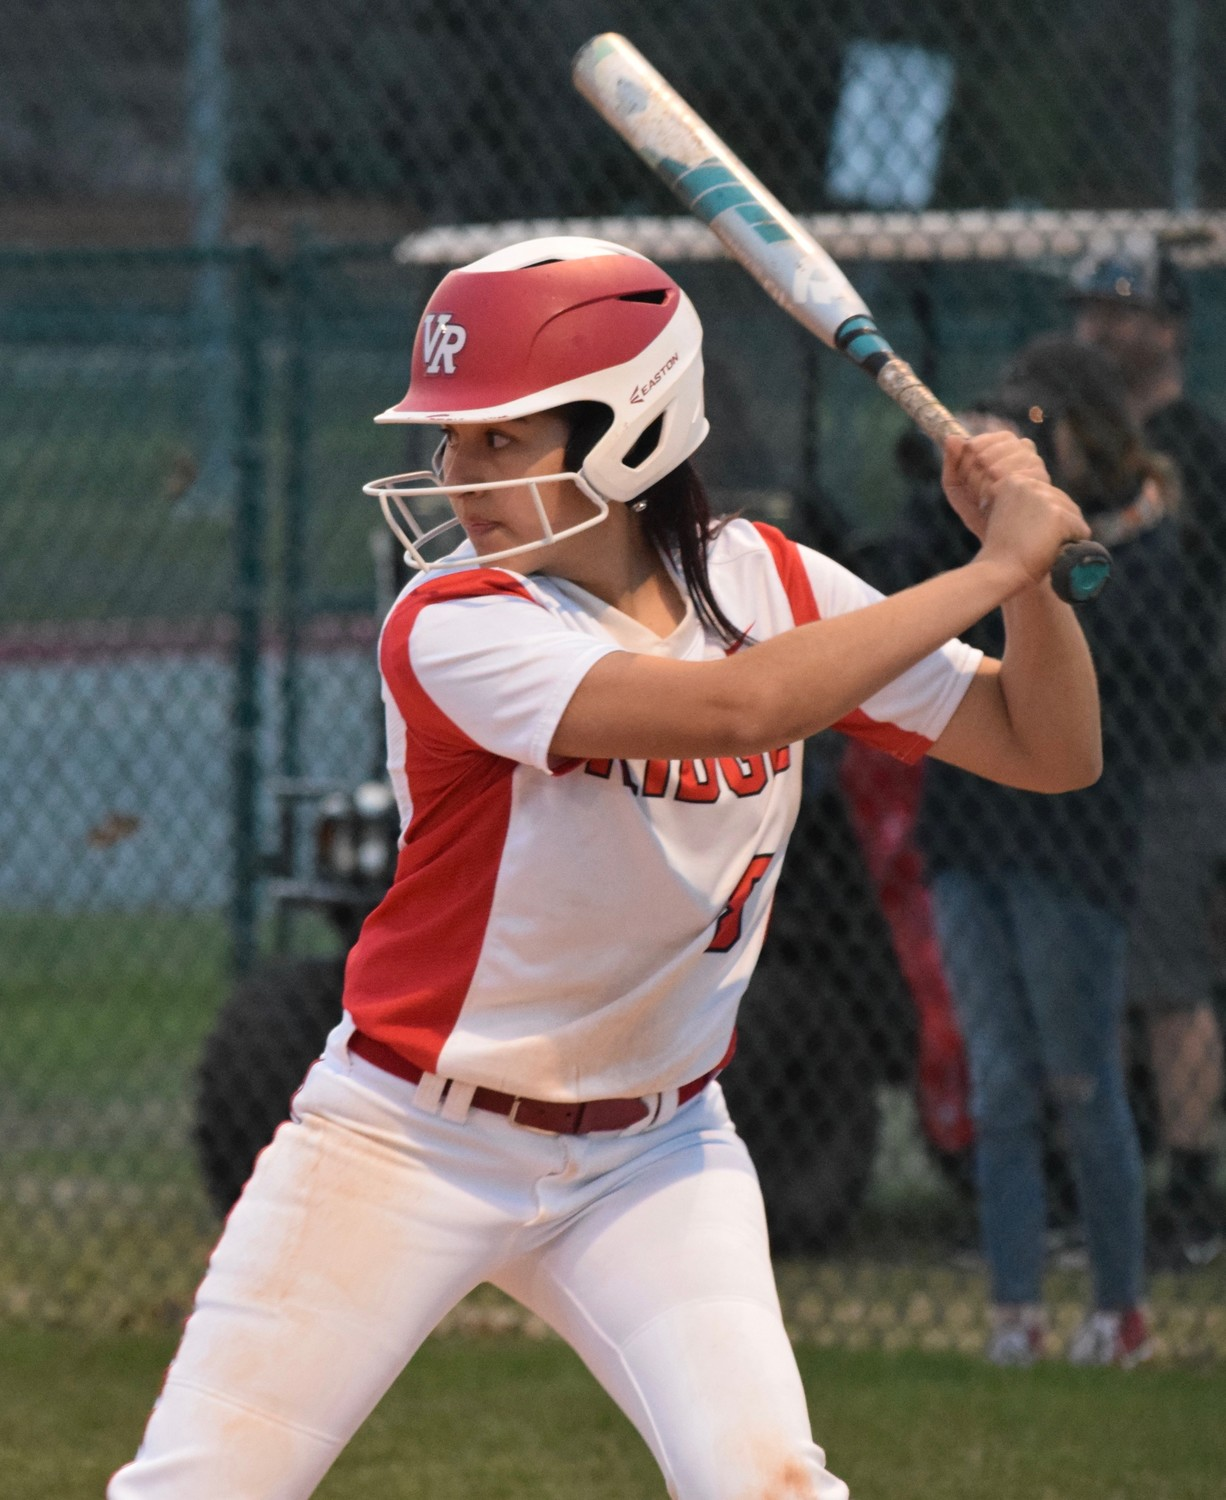 Melayna Lopez hit a pair of home runs and Vista Ridge beat San Antonio MacArthur in the first round of the playoffs. The Lady Rangers take on San Antonio Holmes in the second round.